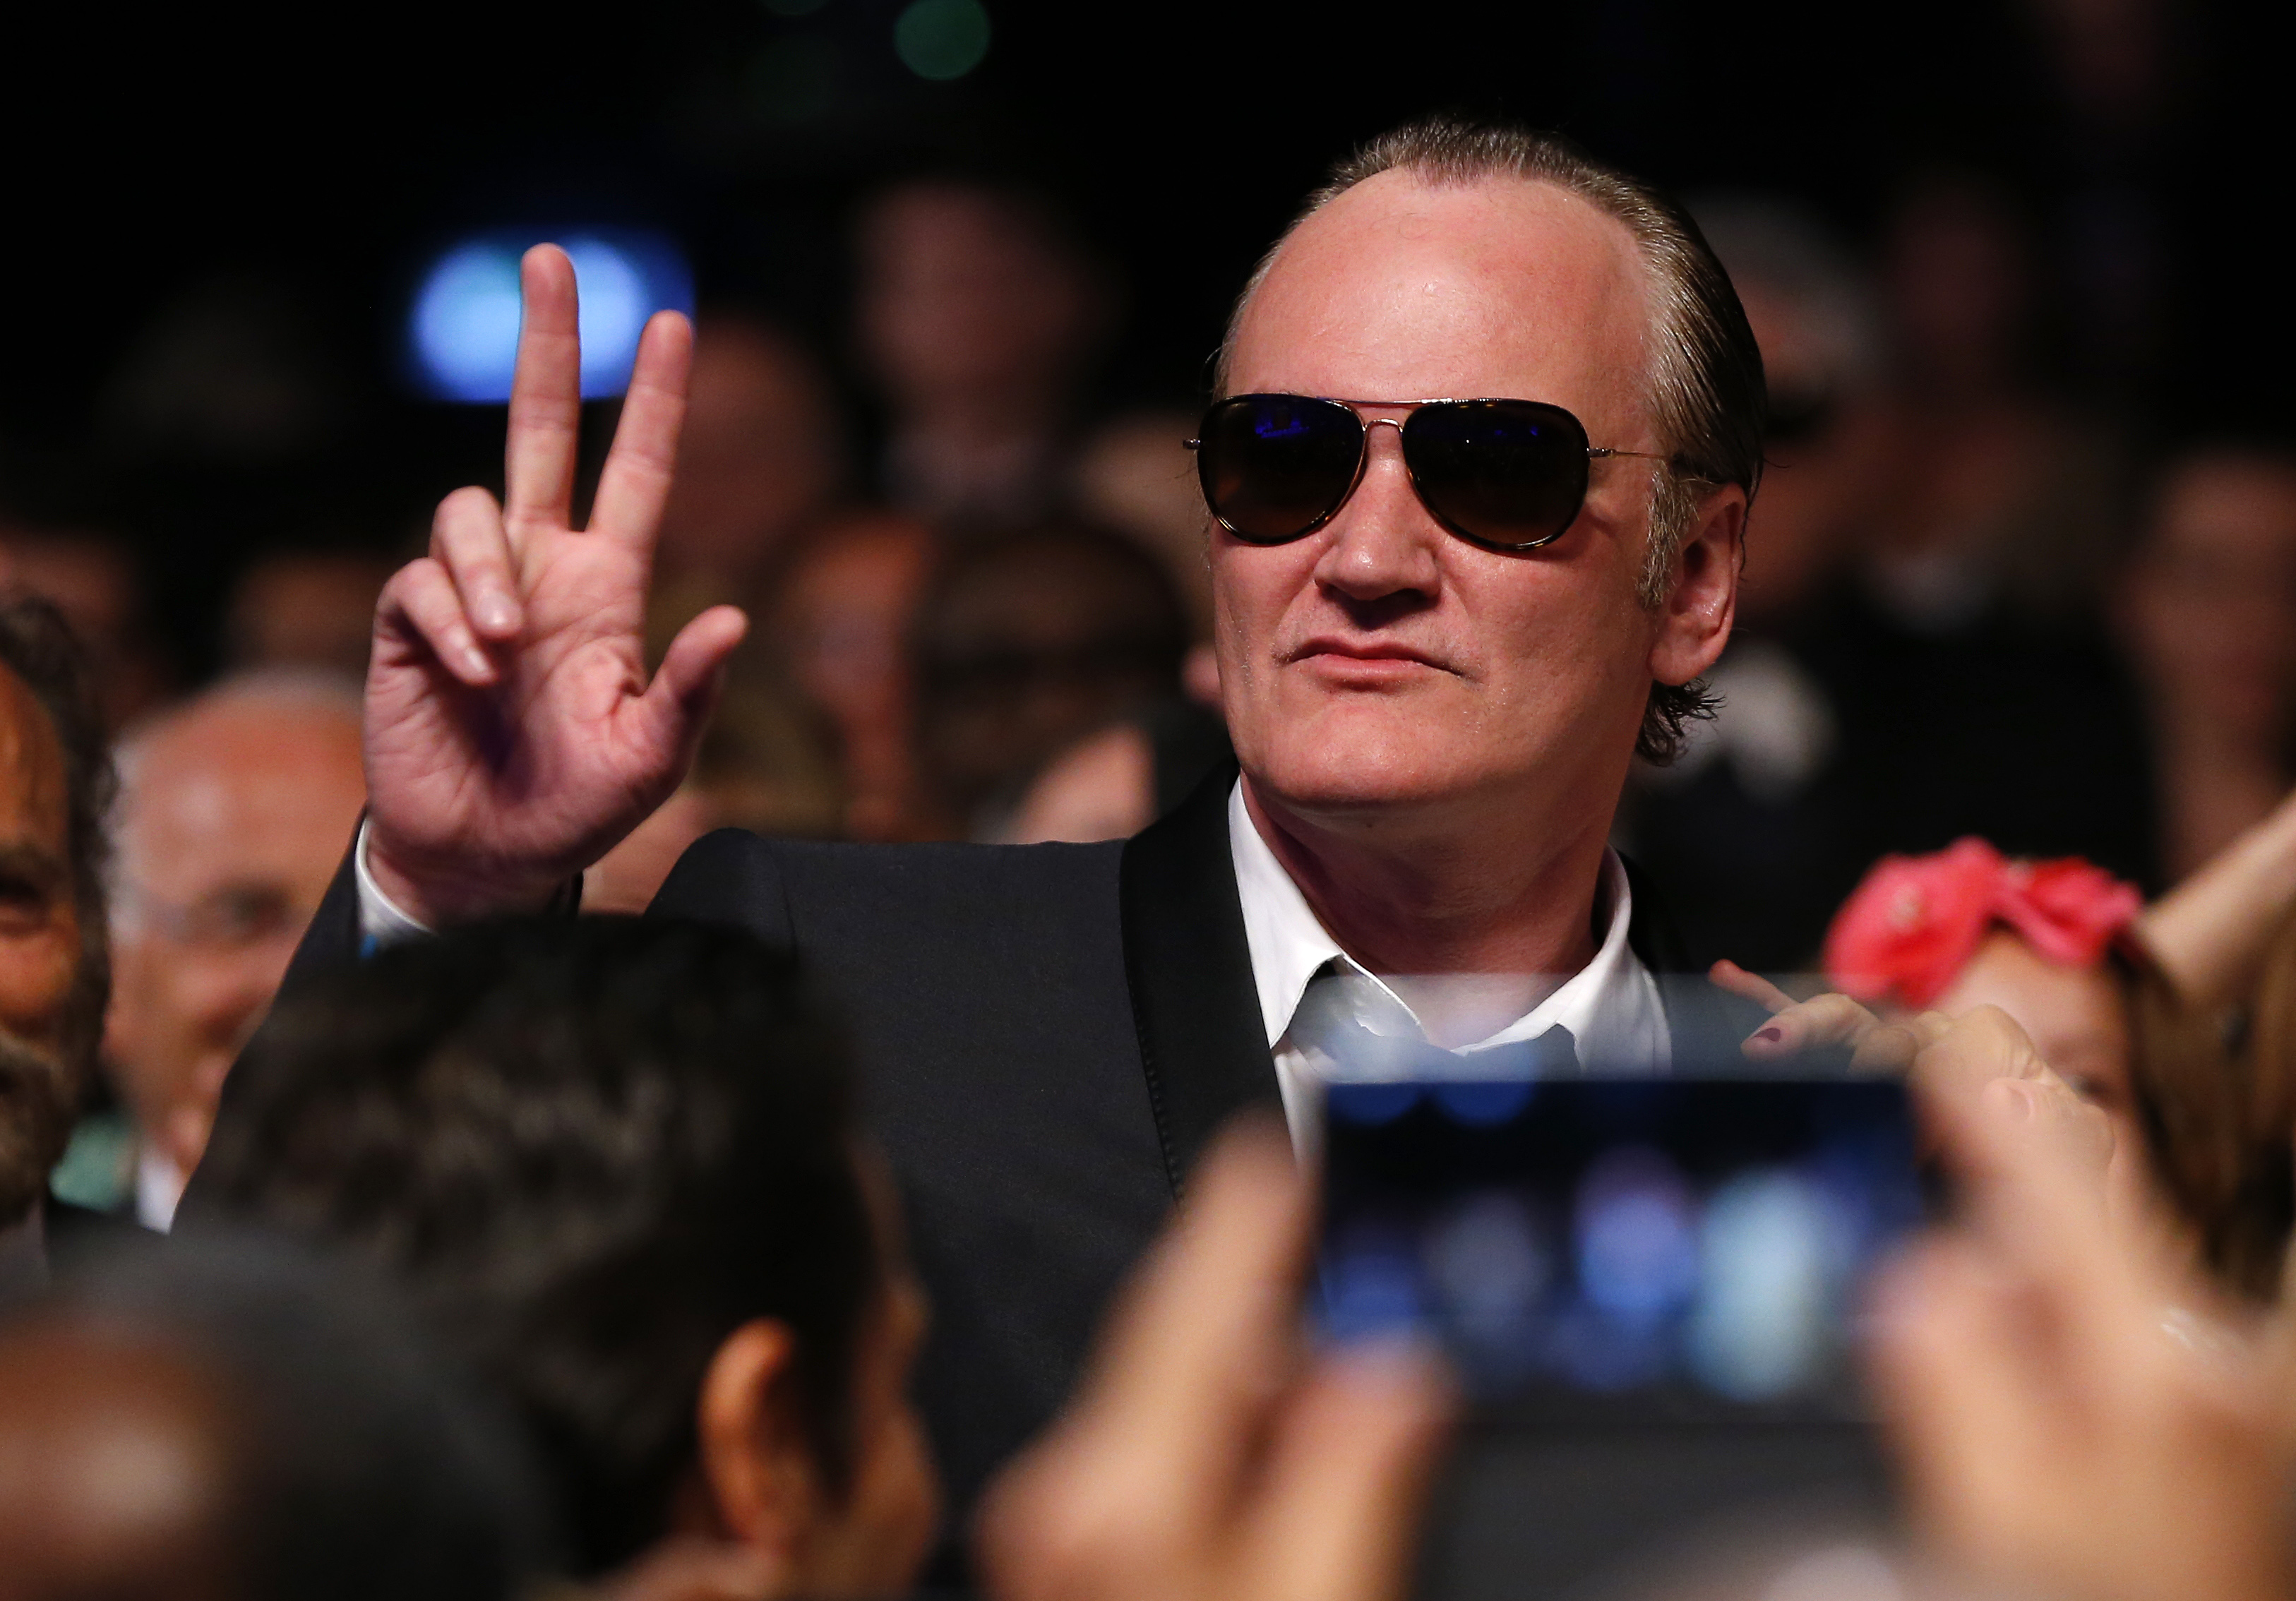 Director Quentin Tarantino reacts as he arrives to attend the closing ceremony of the 67th Cannes Film Festival in Cannes May 24, 2014.